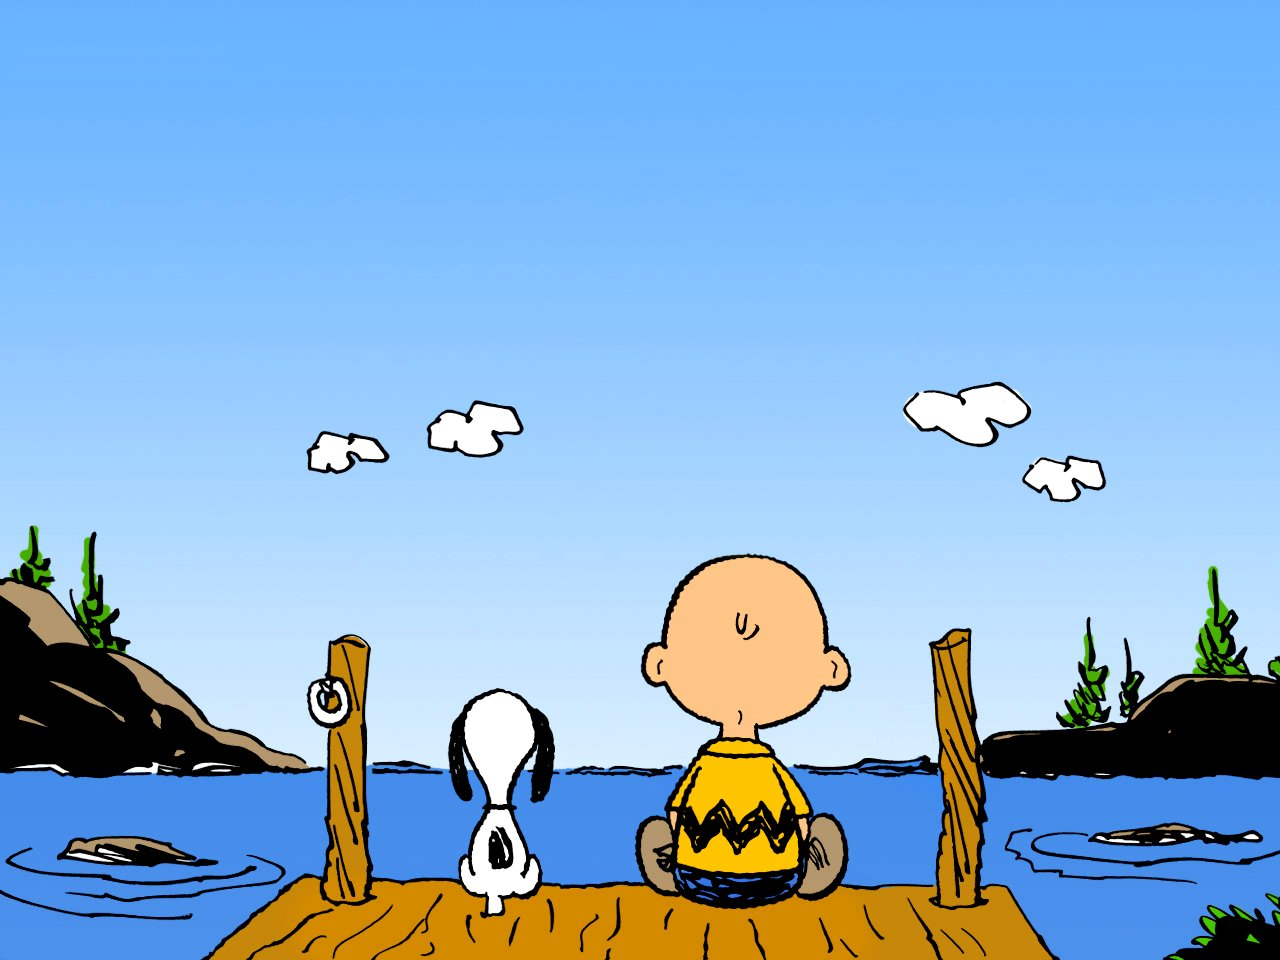 41+] Snoopy and Charlie Brown Wallpaper